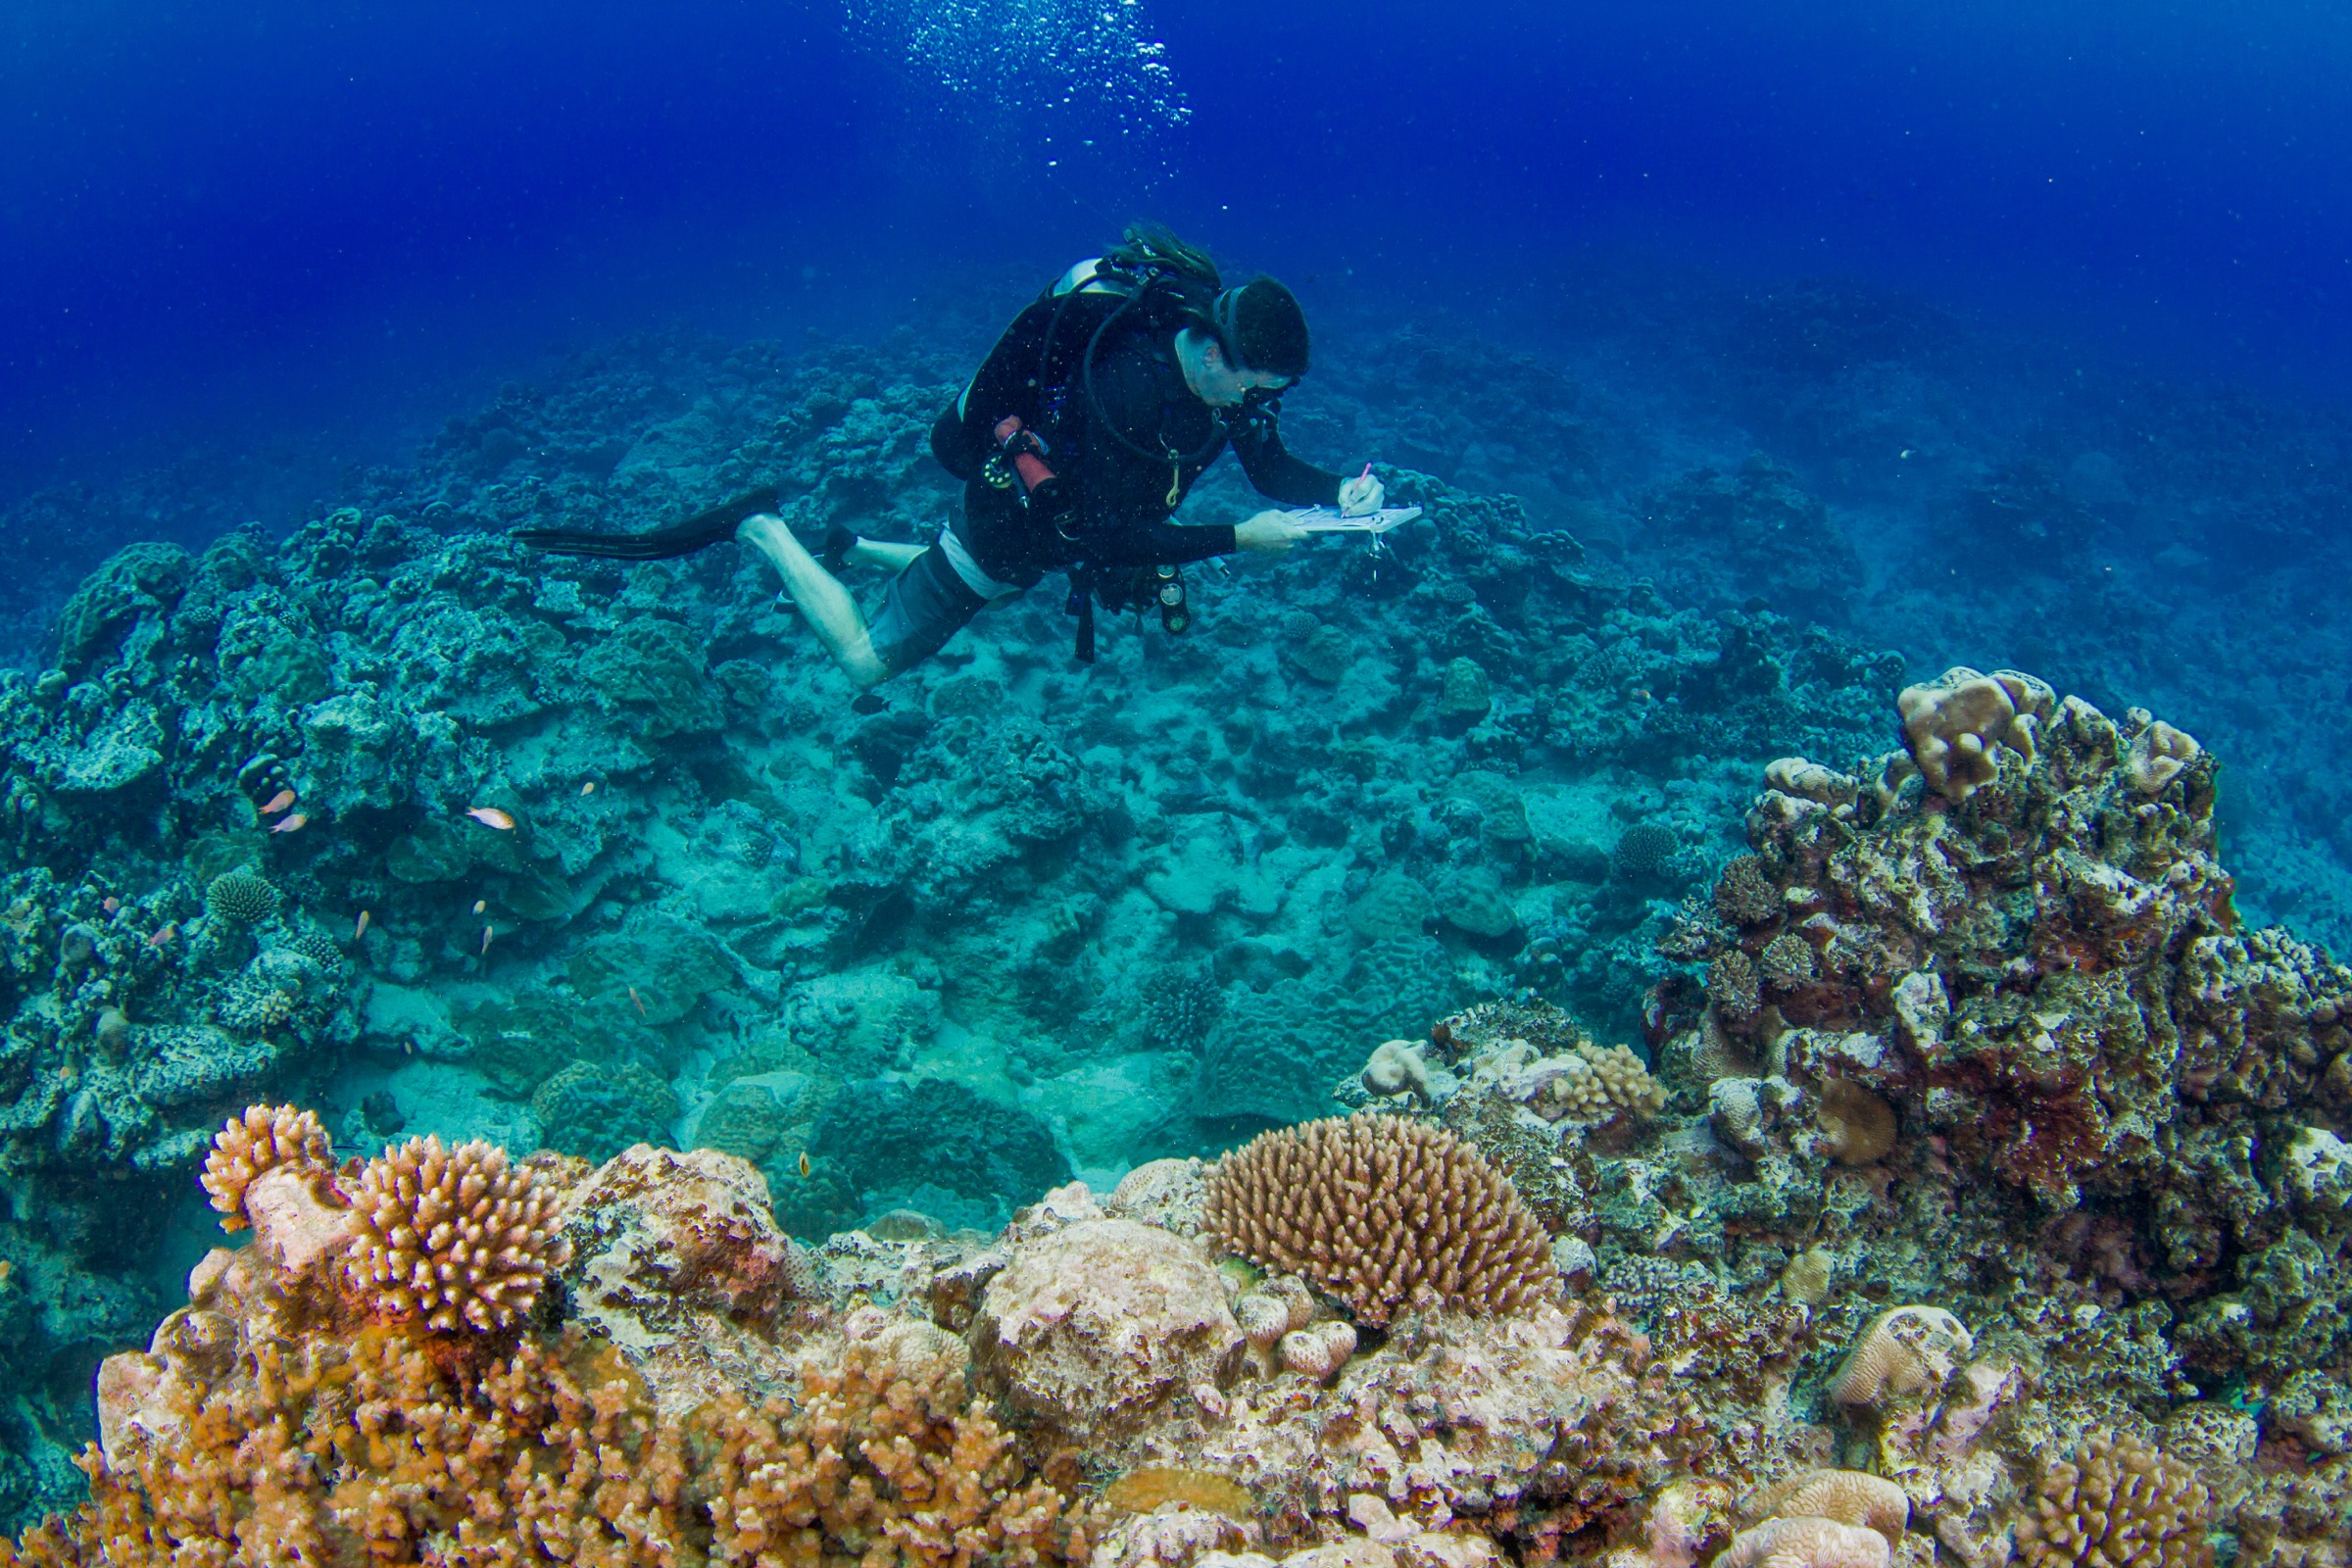 Stuart Sandin conducts a fish count along a section of reef off Rarotonga. Photograph by Brian Zgliczynski/100 Island Challenge